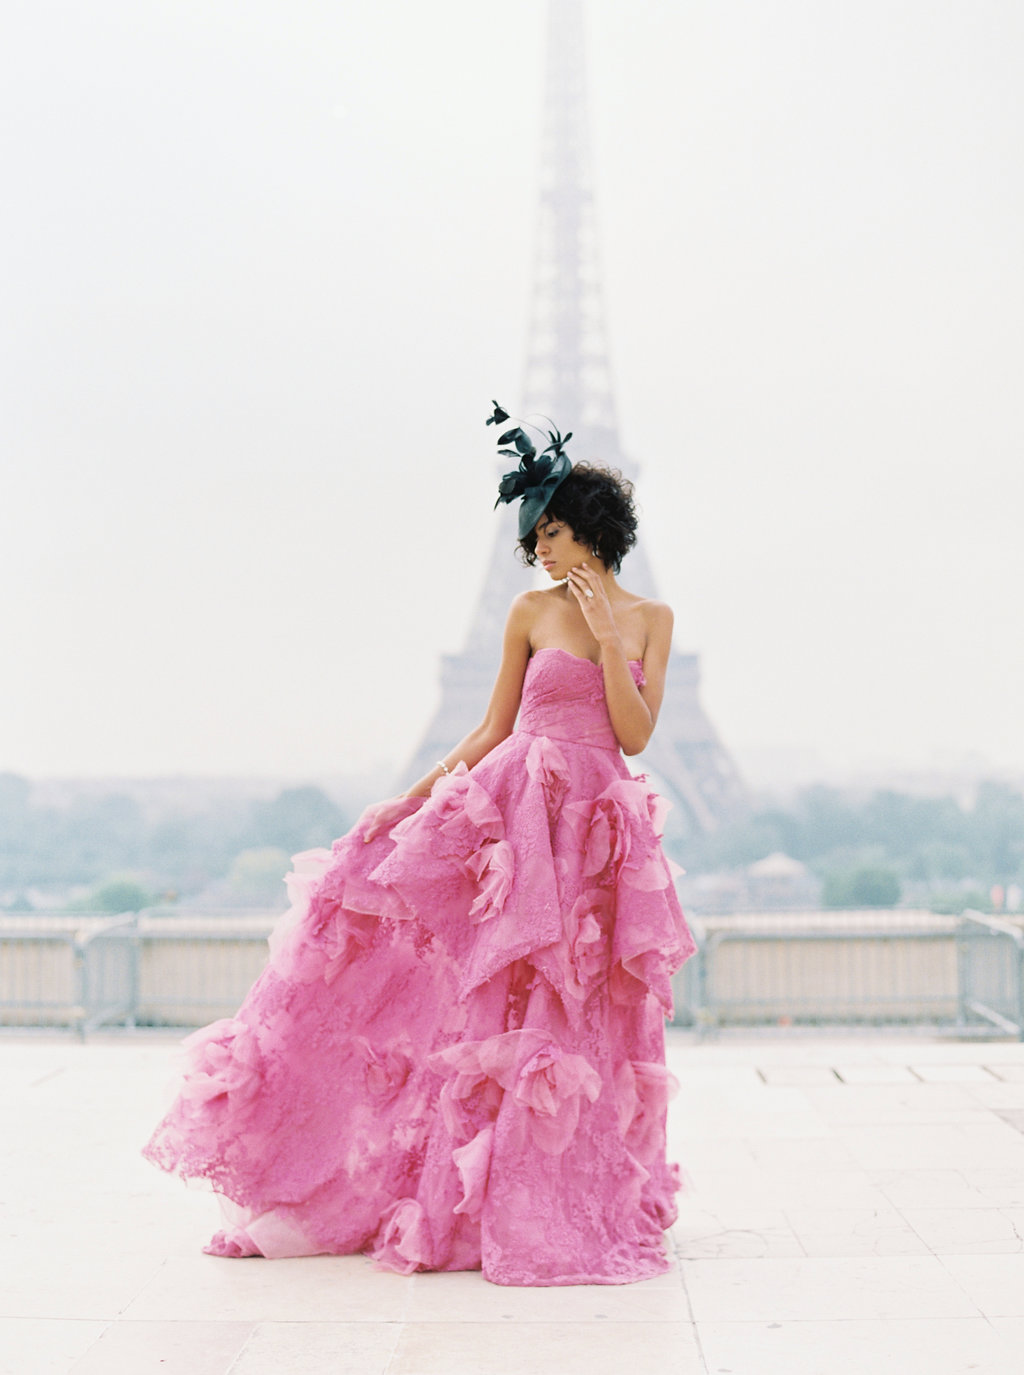 Trocadero Paris Elopement with pink Marchesa gown by East Made Event Company and Sophie Kaye Photography(51of121).jpg